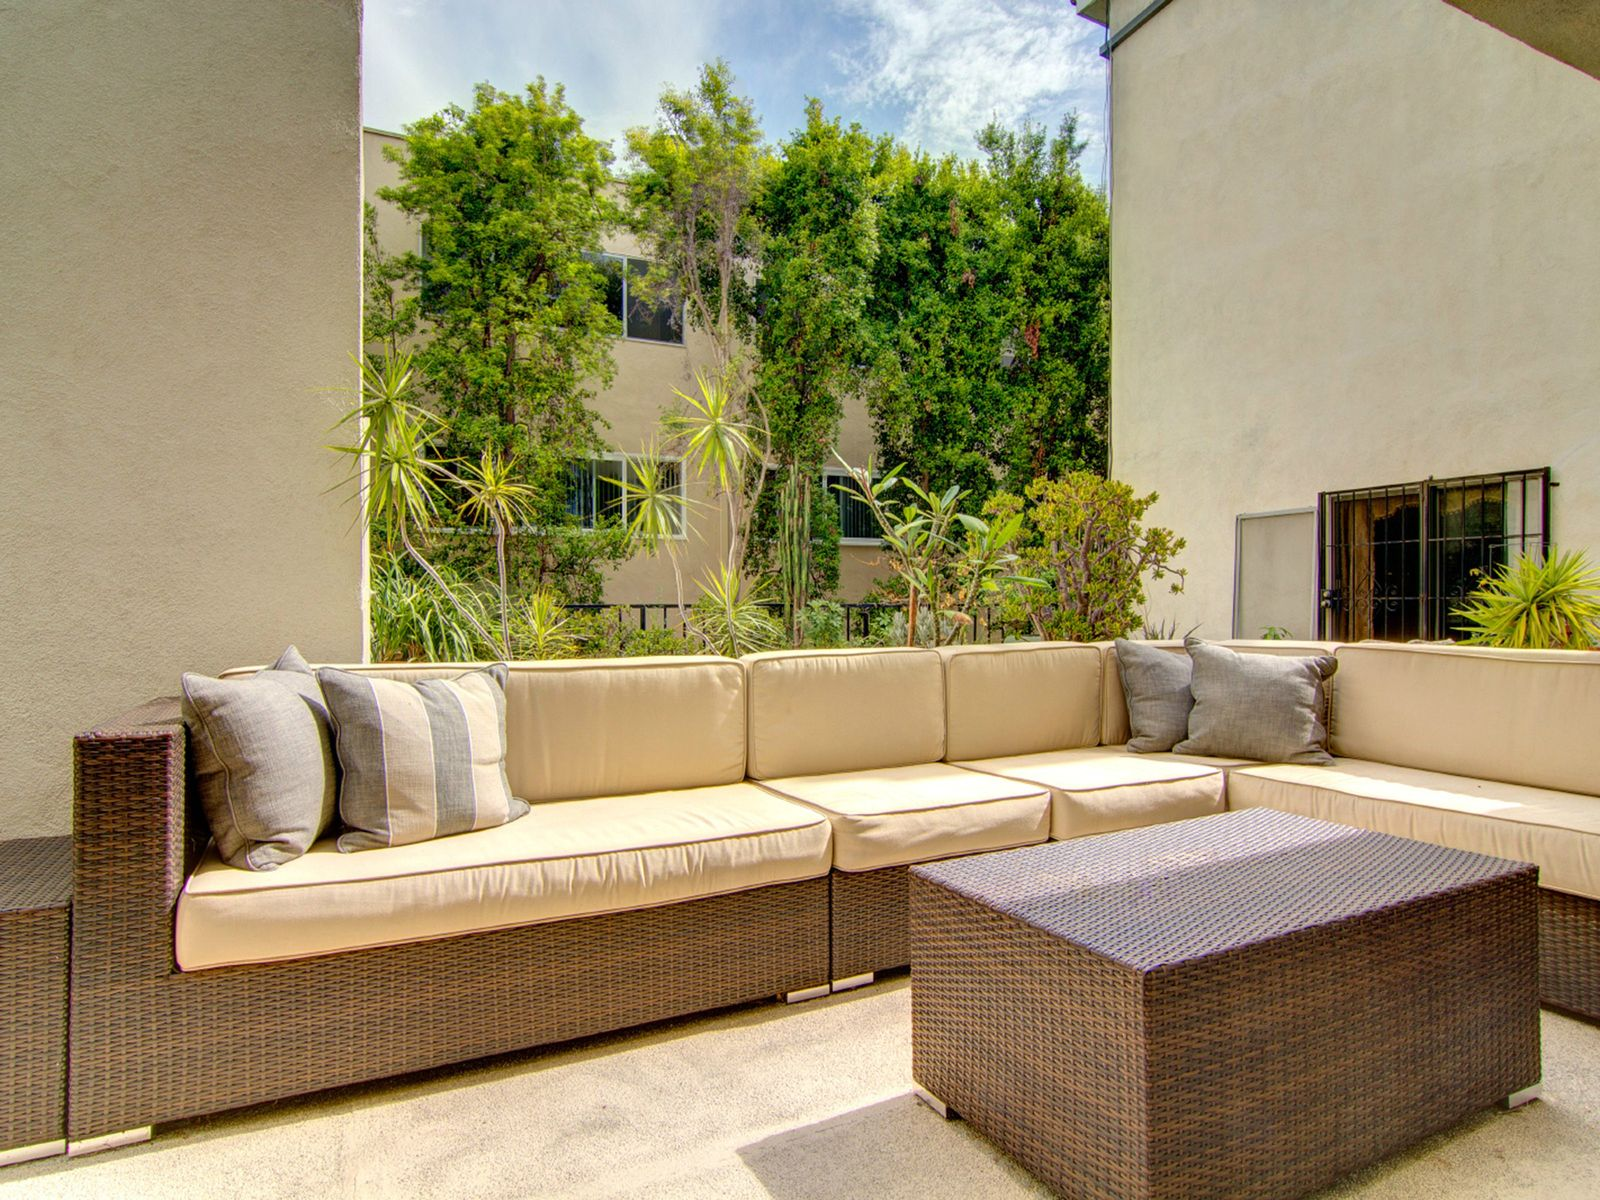 West Hollywood Retreat or Pied-à-terre